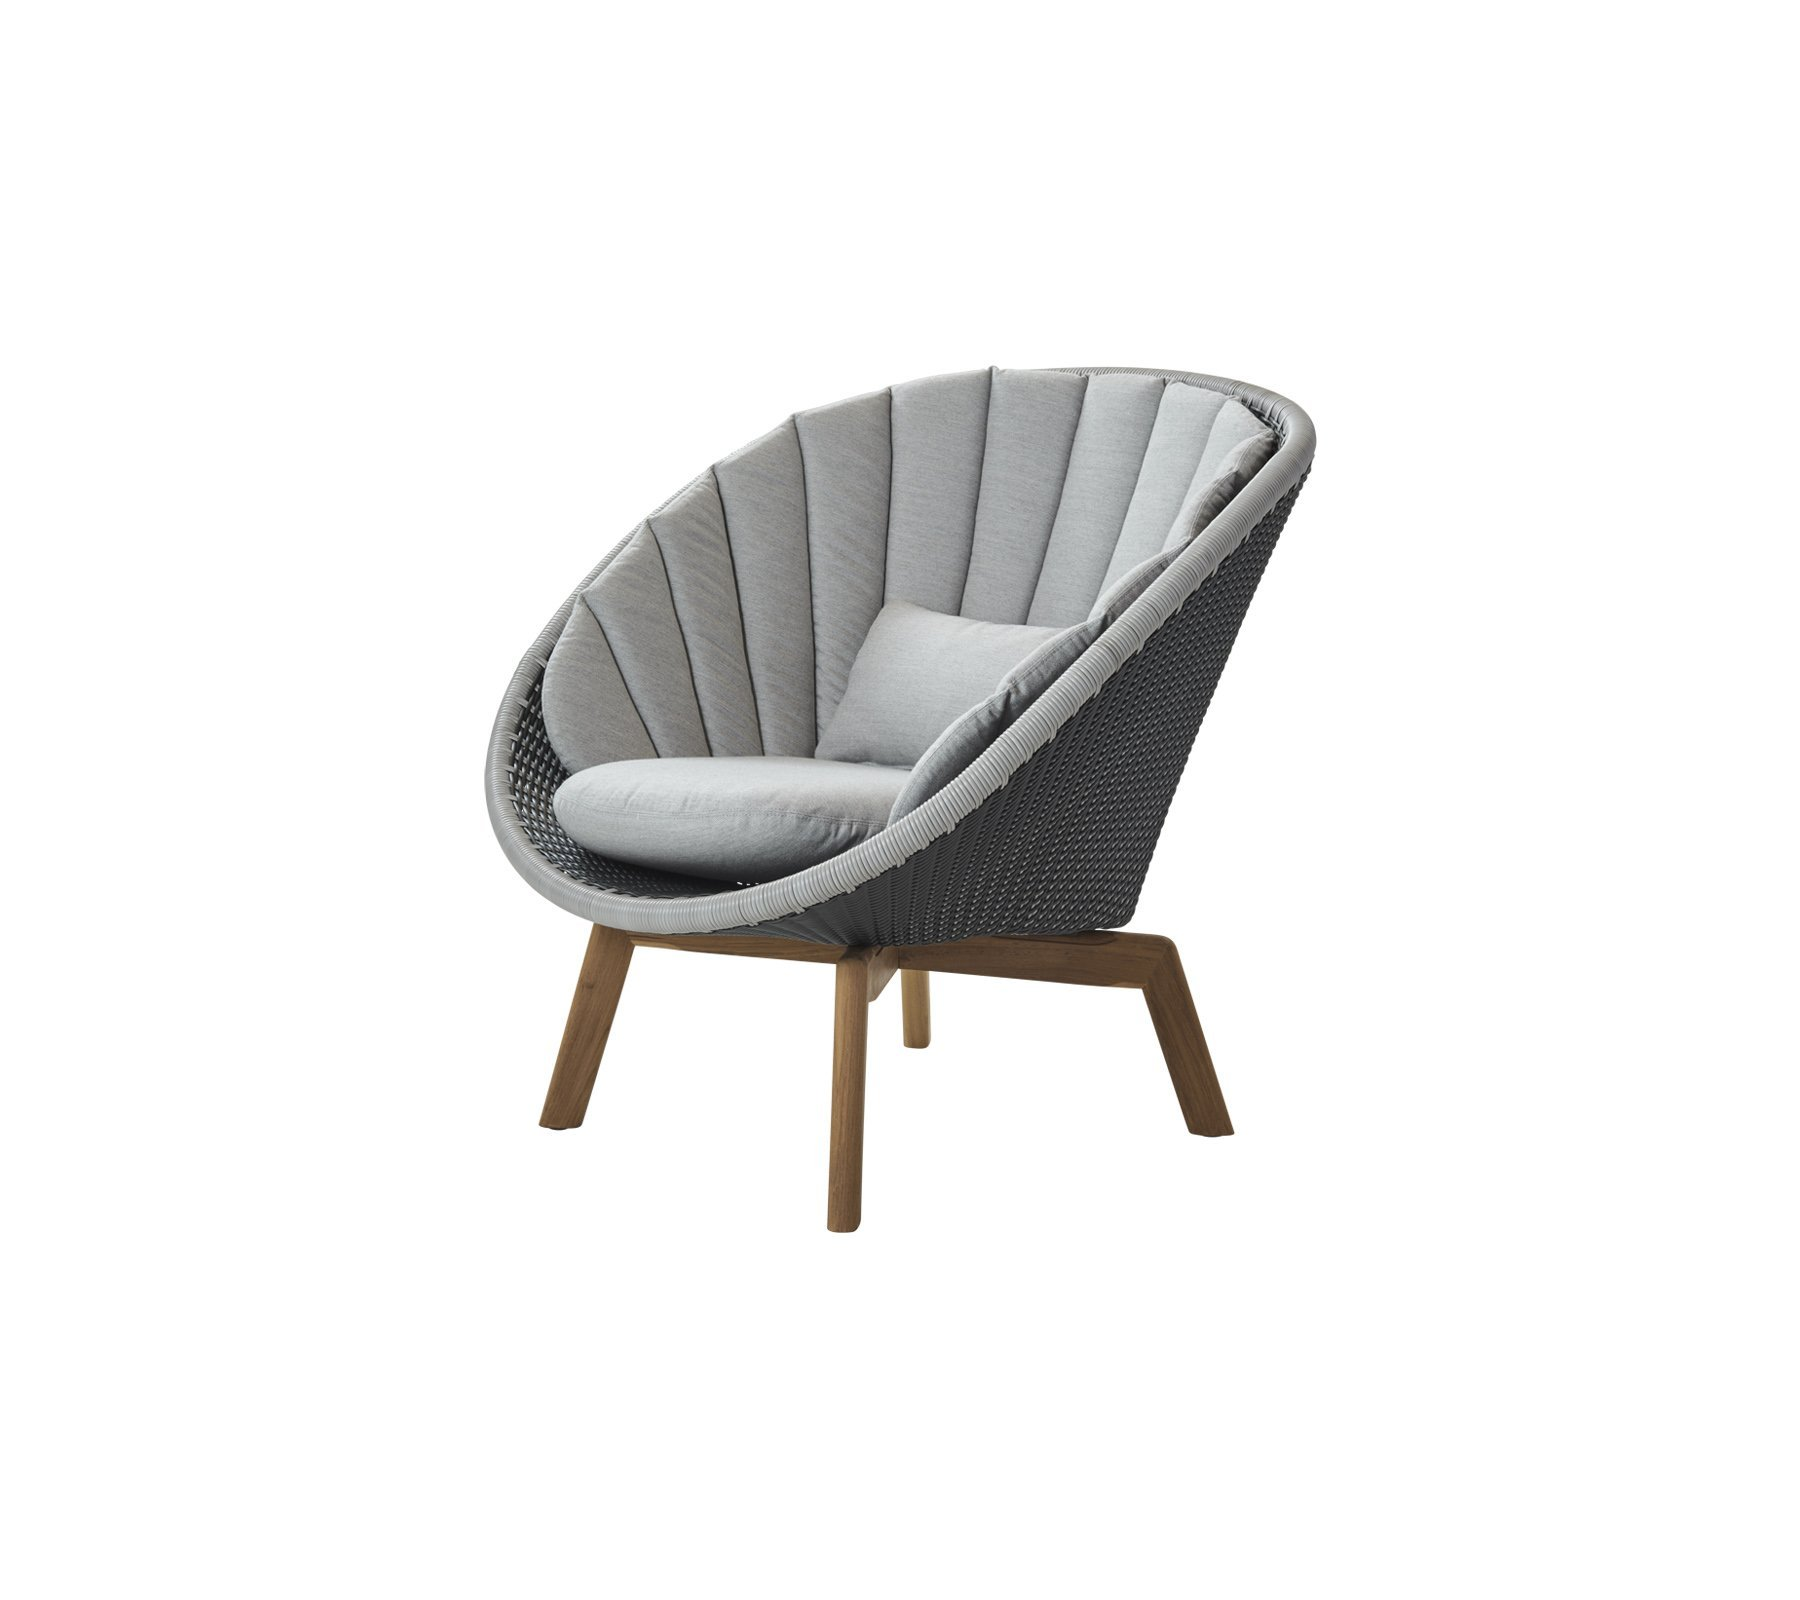 Peacock Lounge Chair from Cane-line, designed by Foersom & Hiort-Lorenzen MDD